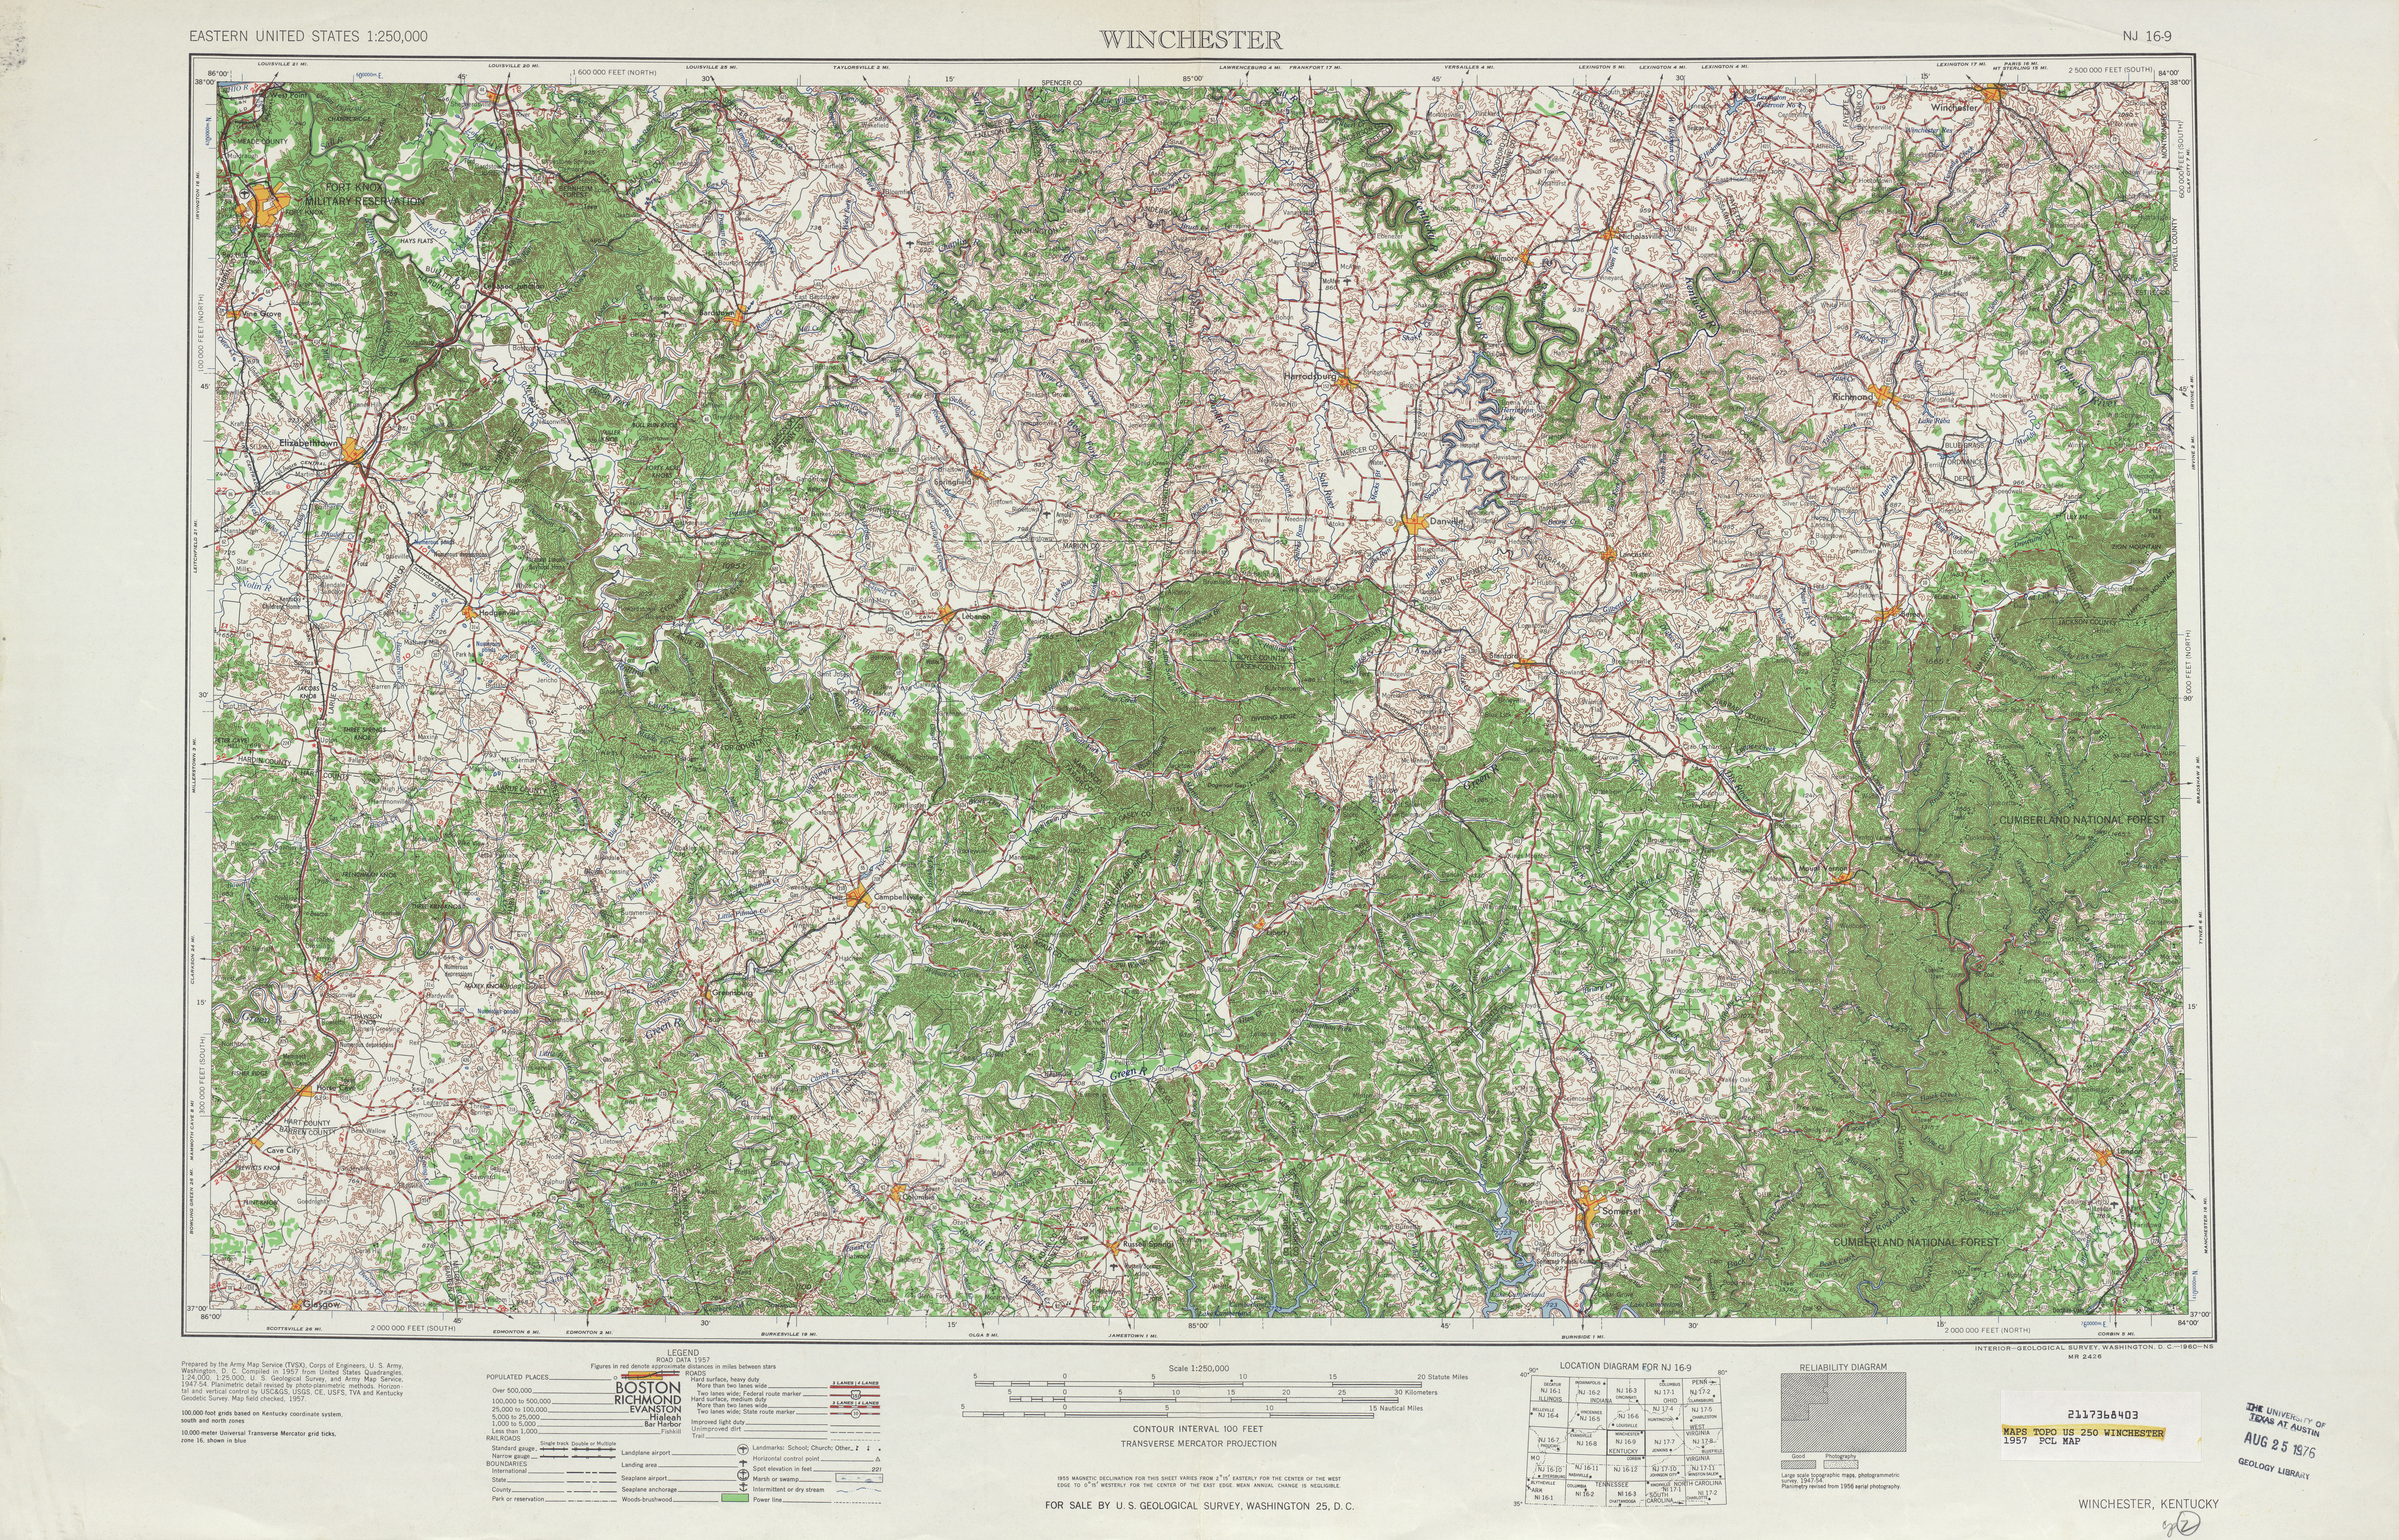 Winchester Topographic Map Sheet, United States 1957